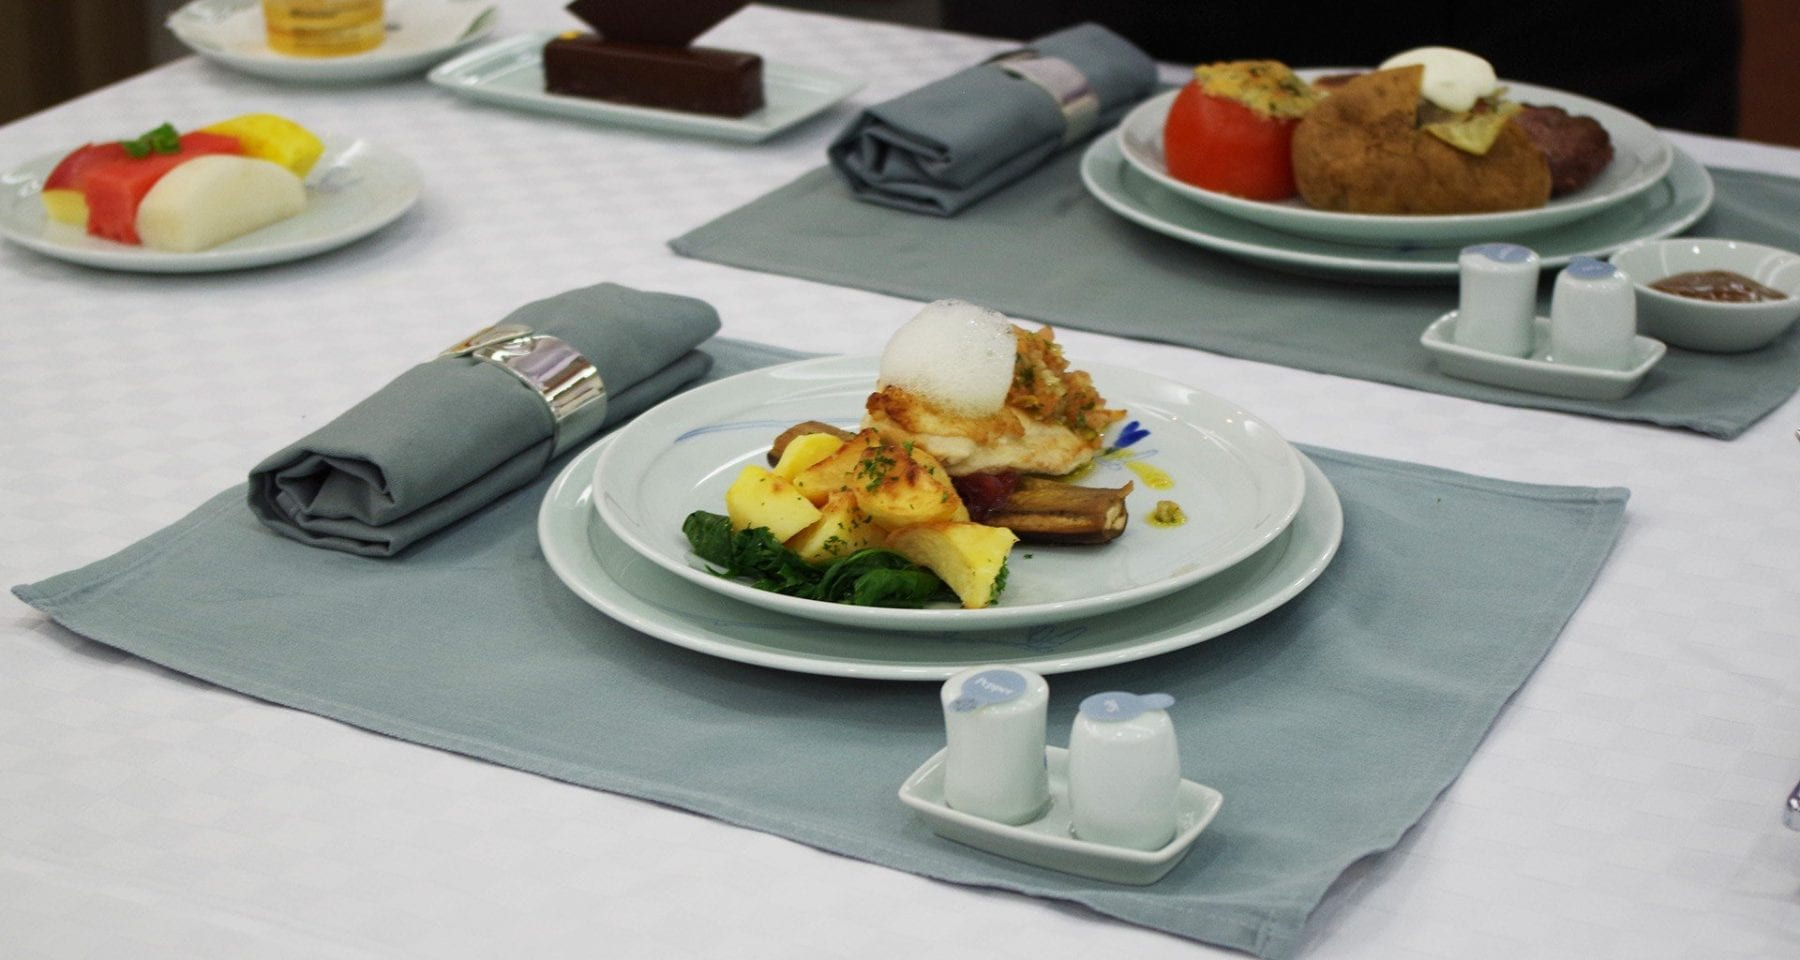 Korean Air First Class meals presentation